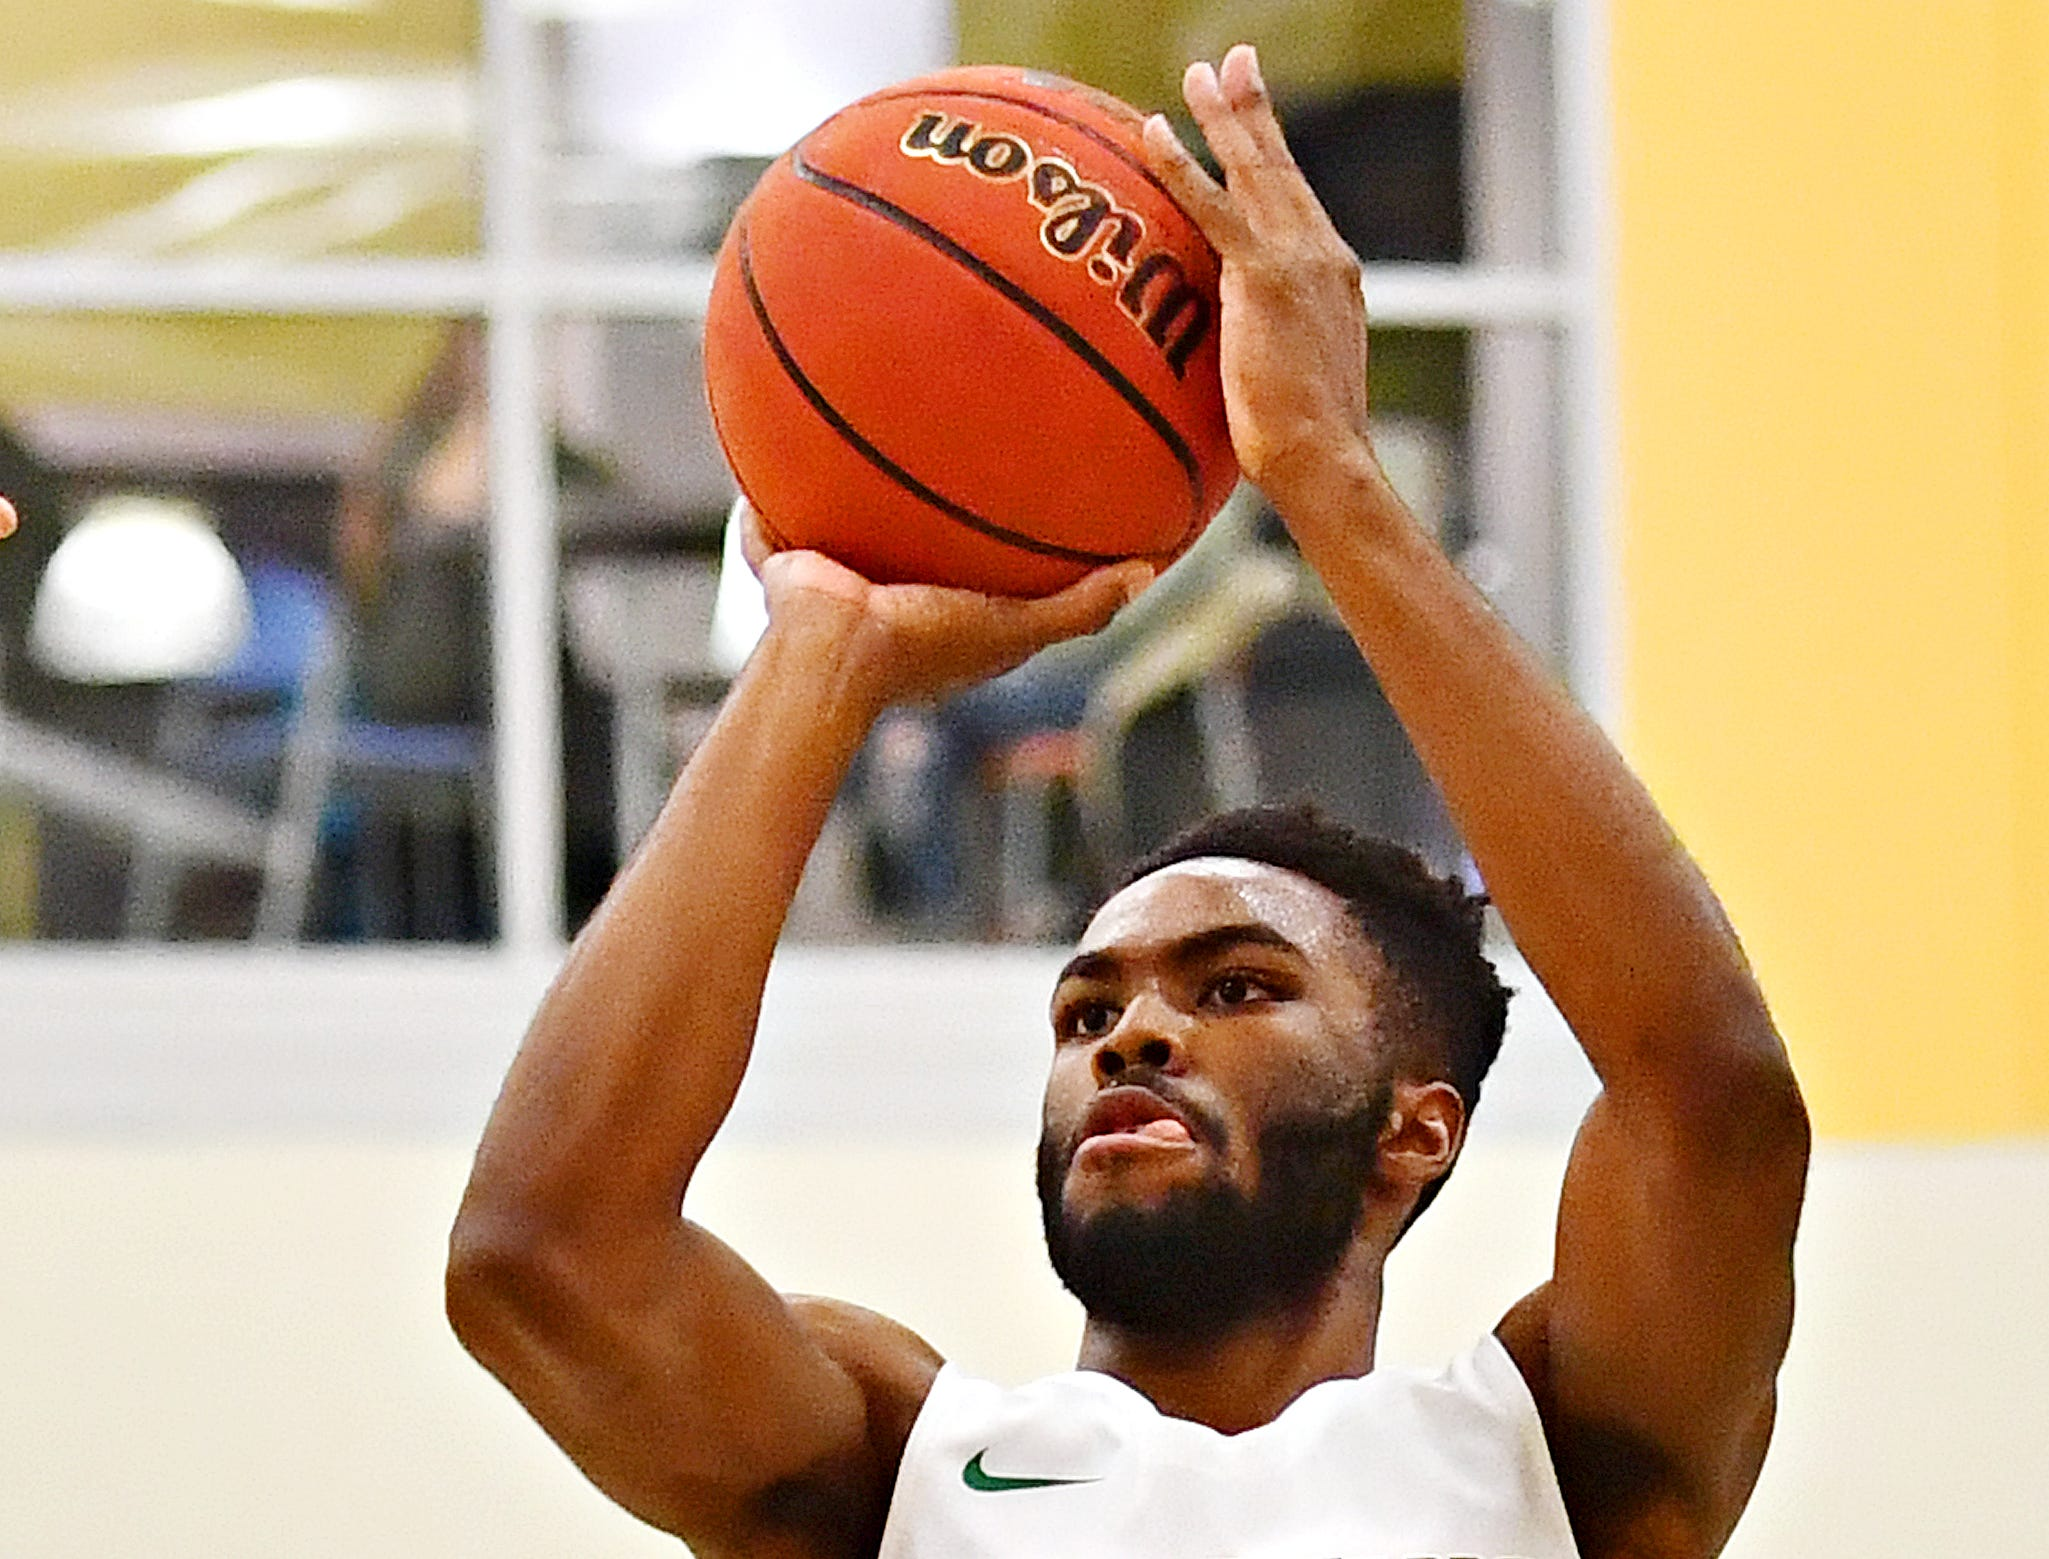 York College's Jason Bady aims for the basket during men's basketball action against Gwynedd-Mercy at Grumbacher Sport and Fitness Center in Spring Garden Township, Wednesday, Nov. 28, 2018. Dawn J. Sagert photo